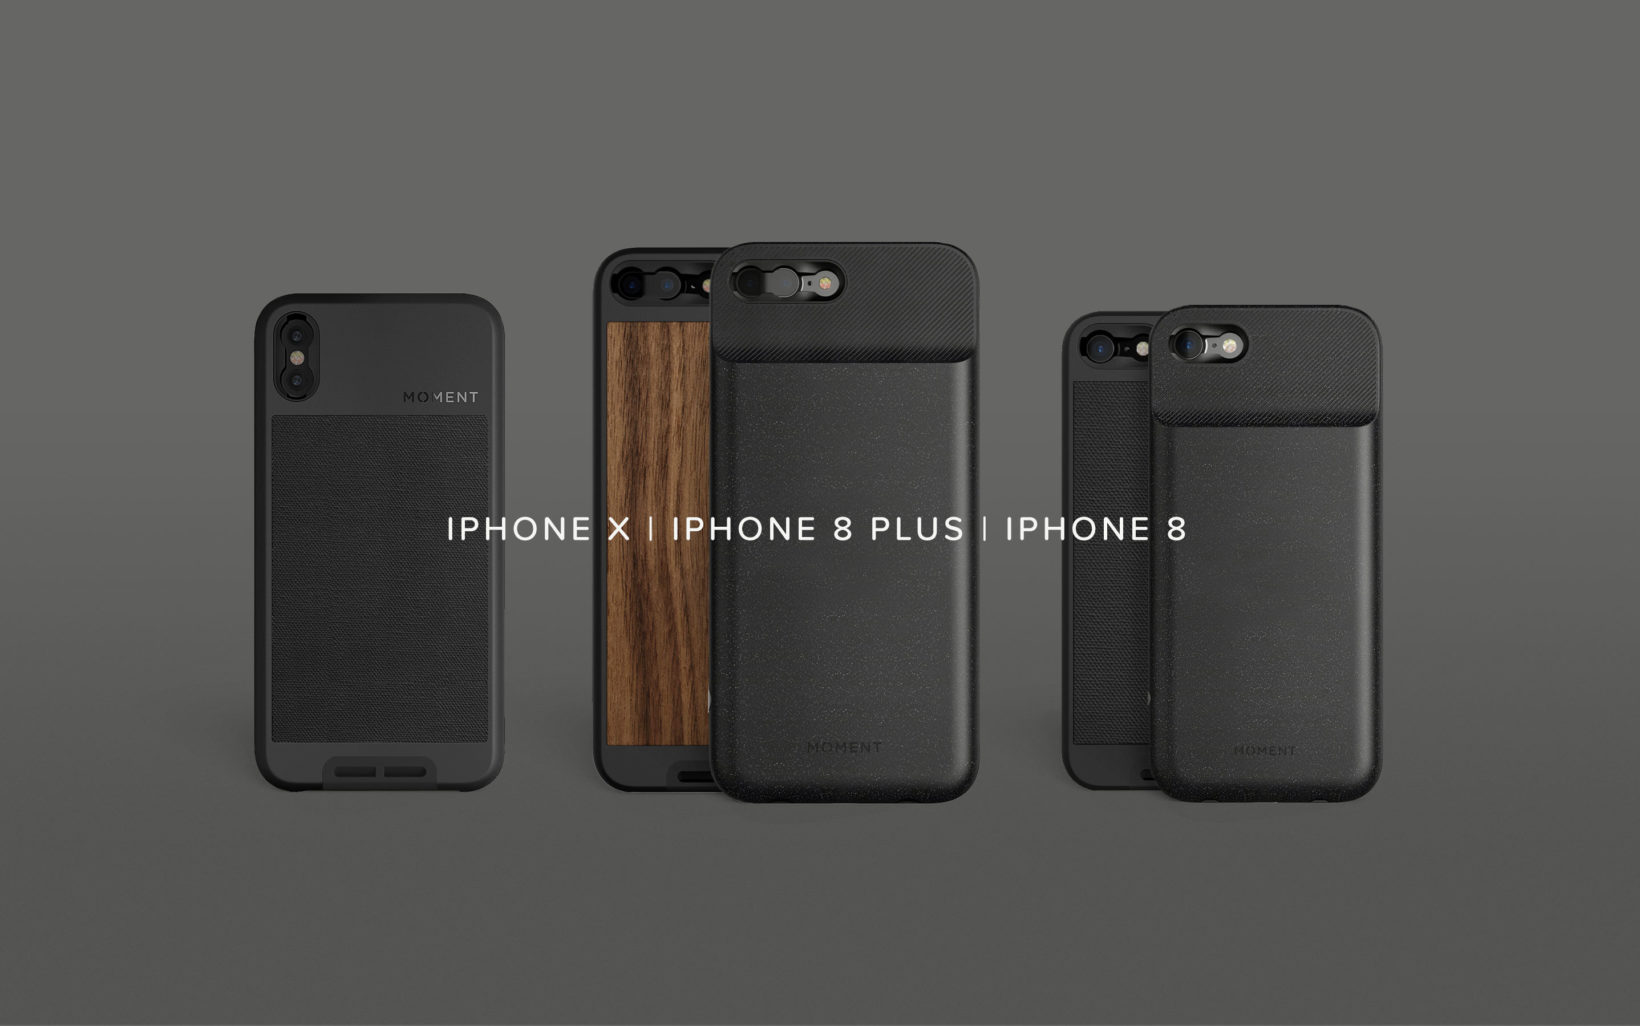 new concept bbfbd ae6ef iPhone 8 and iPhone 8 Plus: Cases, Battery Cases, and Lenses - Moment